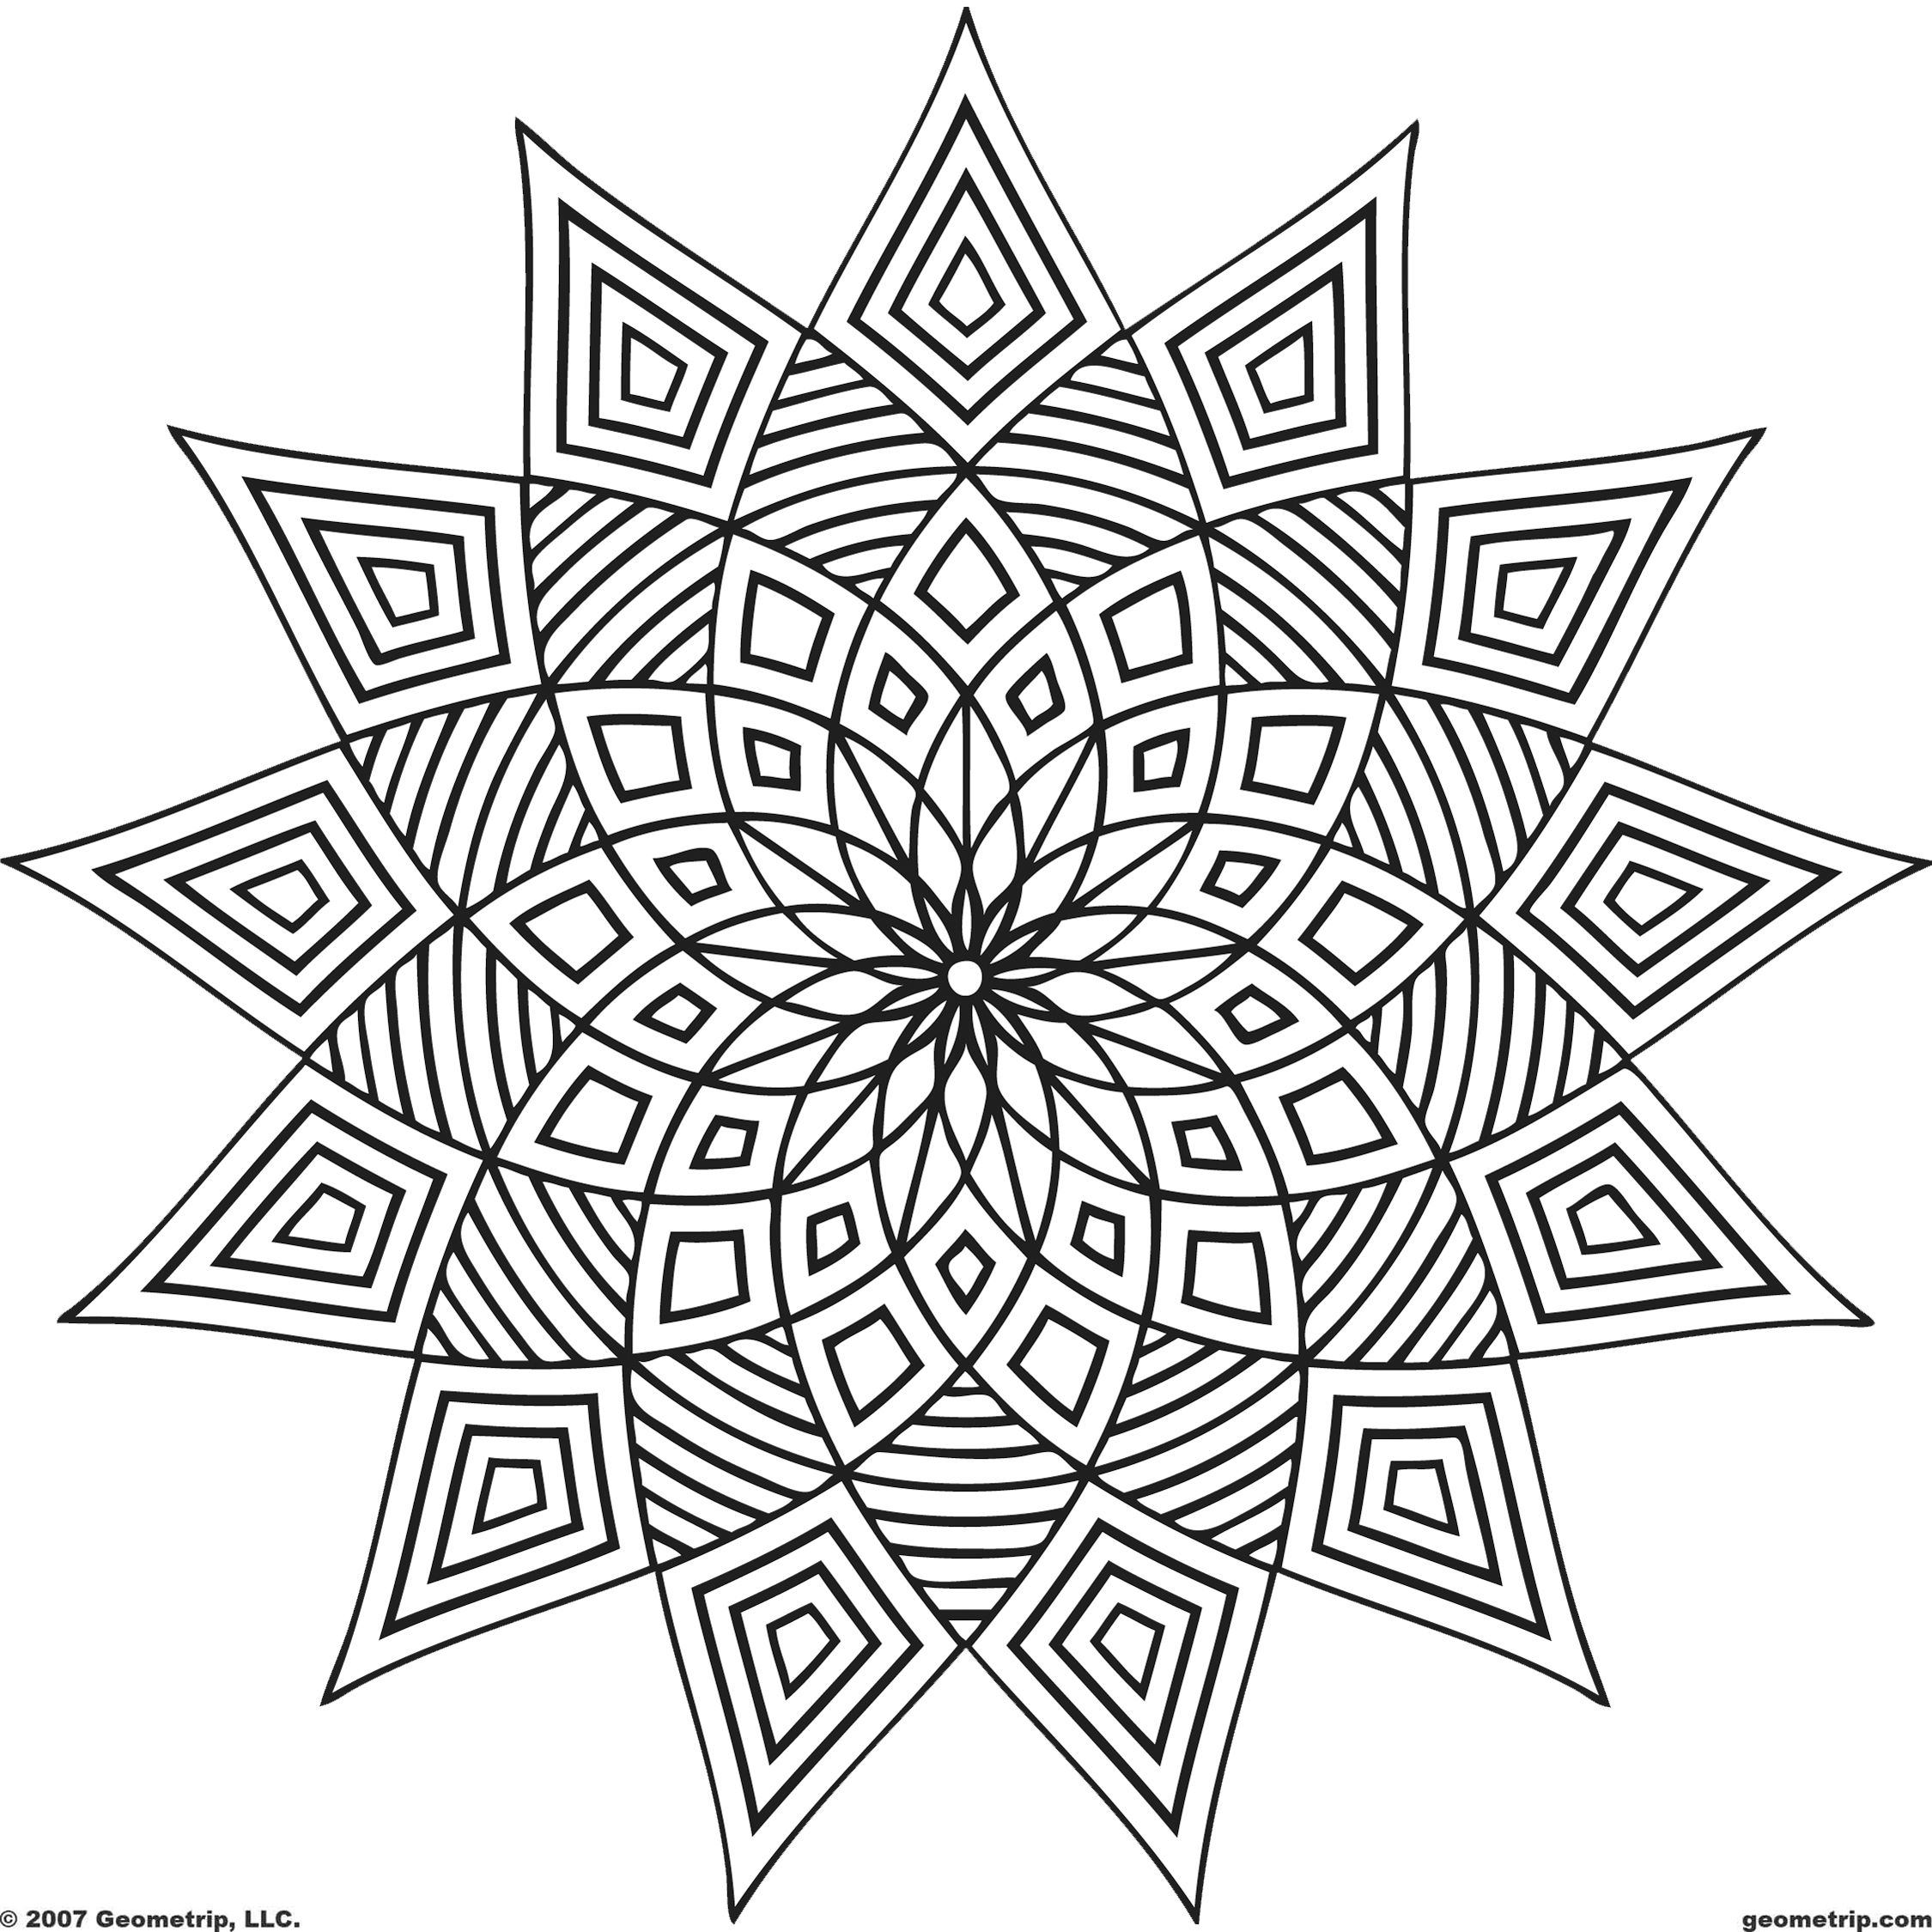 Coloring pages patterns - Explore Geometric Coloring Pages And More